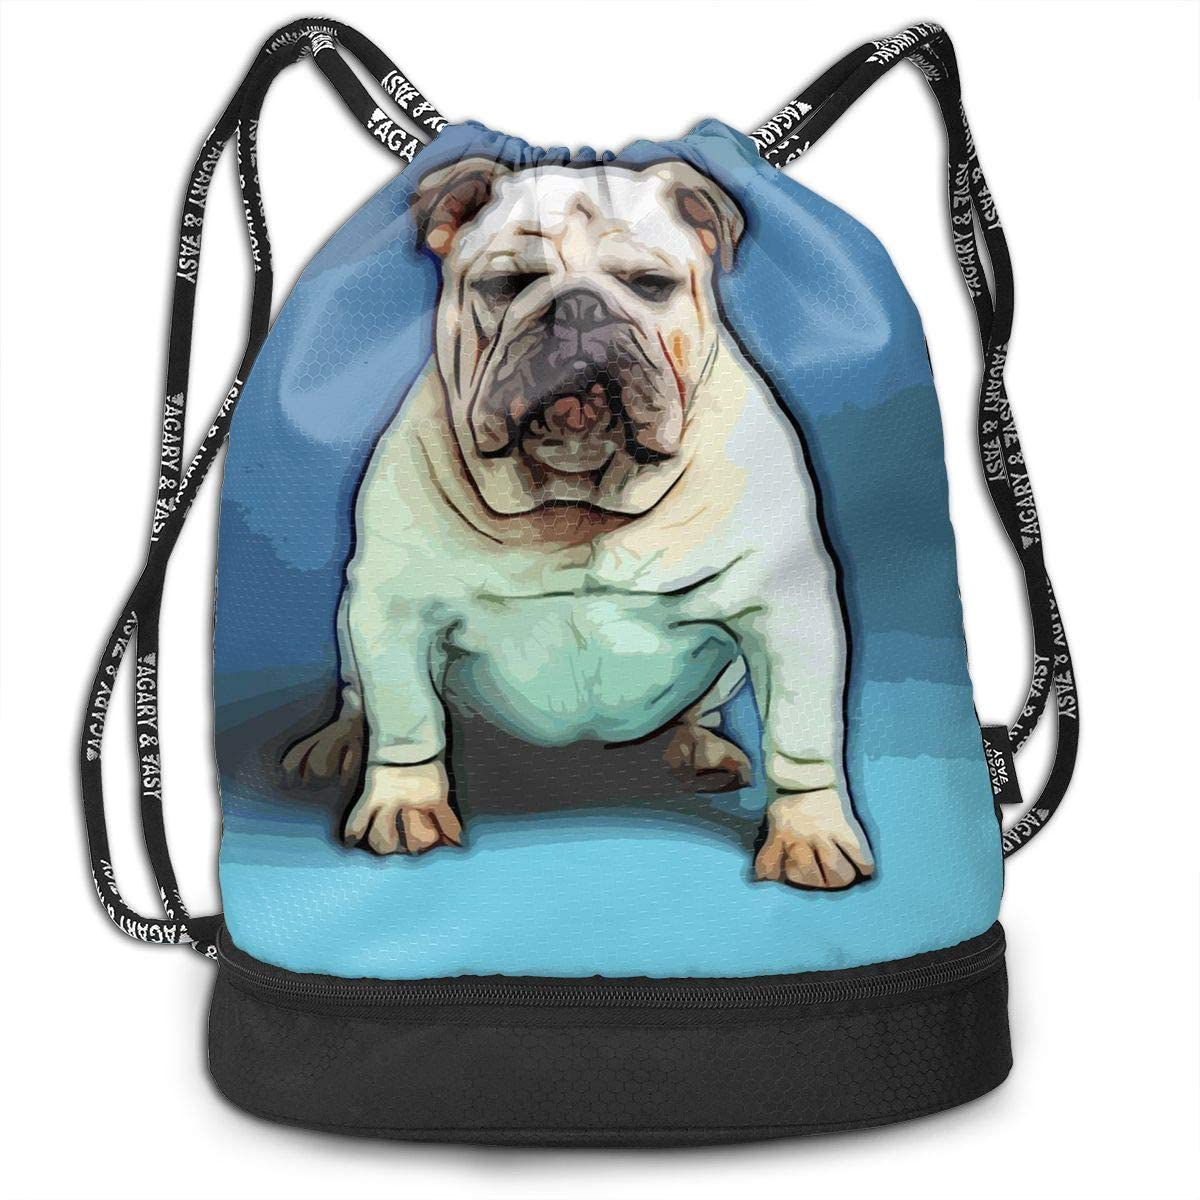 Bundle Backpacks Bulldog Puppy Art Gym Sack Drawstring Bags Casual Daypack Yoga Bag School Training Pouch